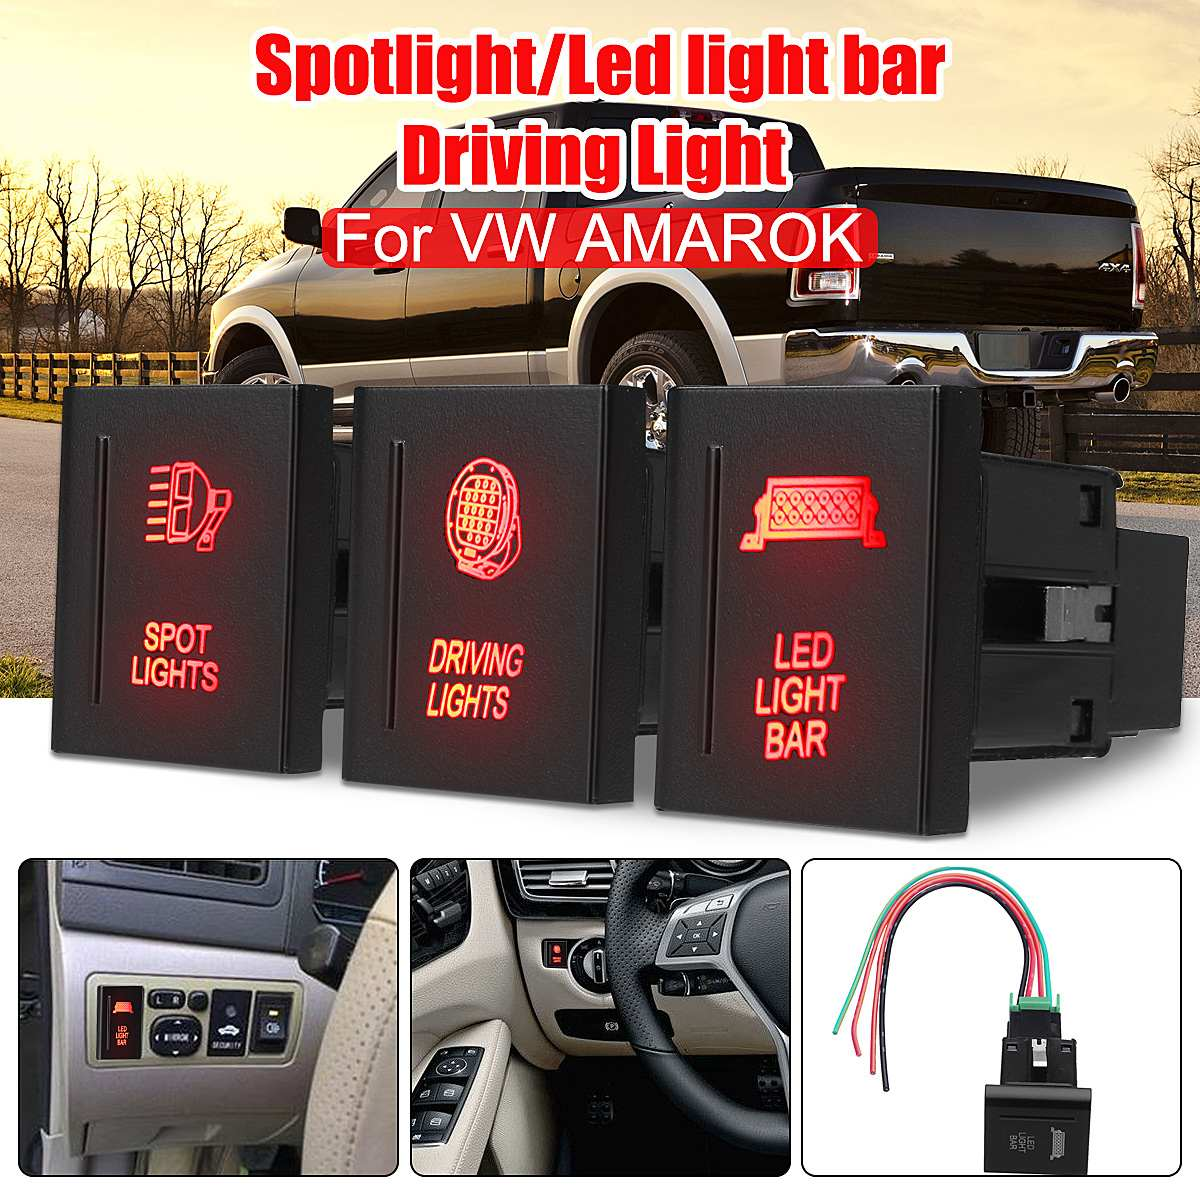 ROOF LED LIGHT BAR Push Button Switch On Off Dual Red For VW Amarok Left Side